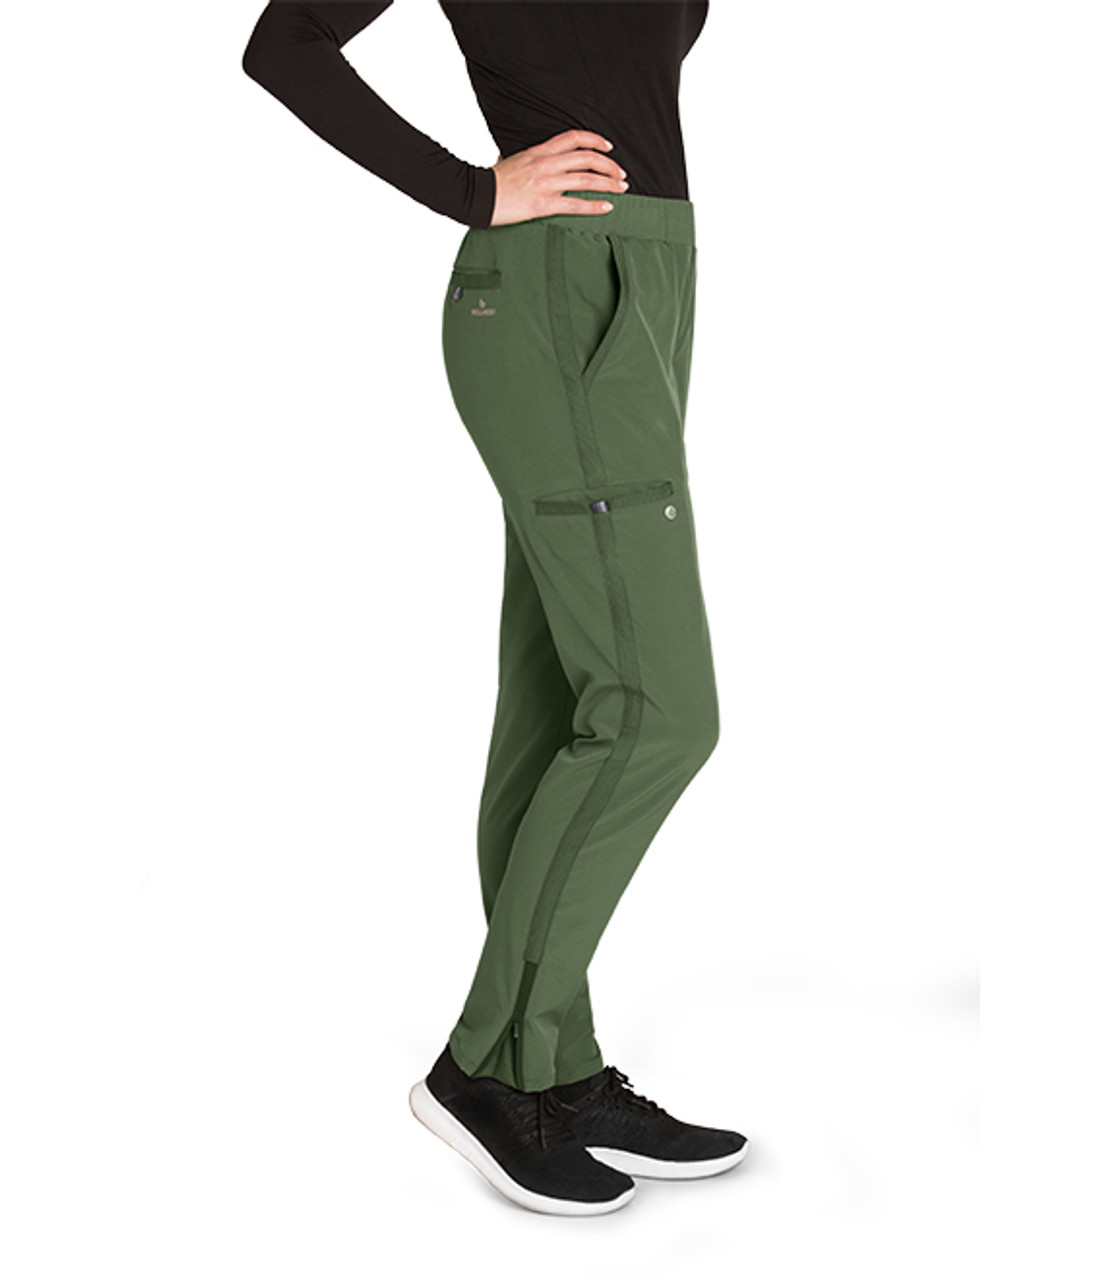 20025d27475 (BWP505) Barco One Wellness Women's 5 Pocket Knit Waist Cargo Pant ...